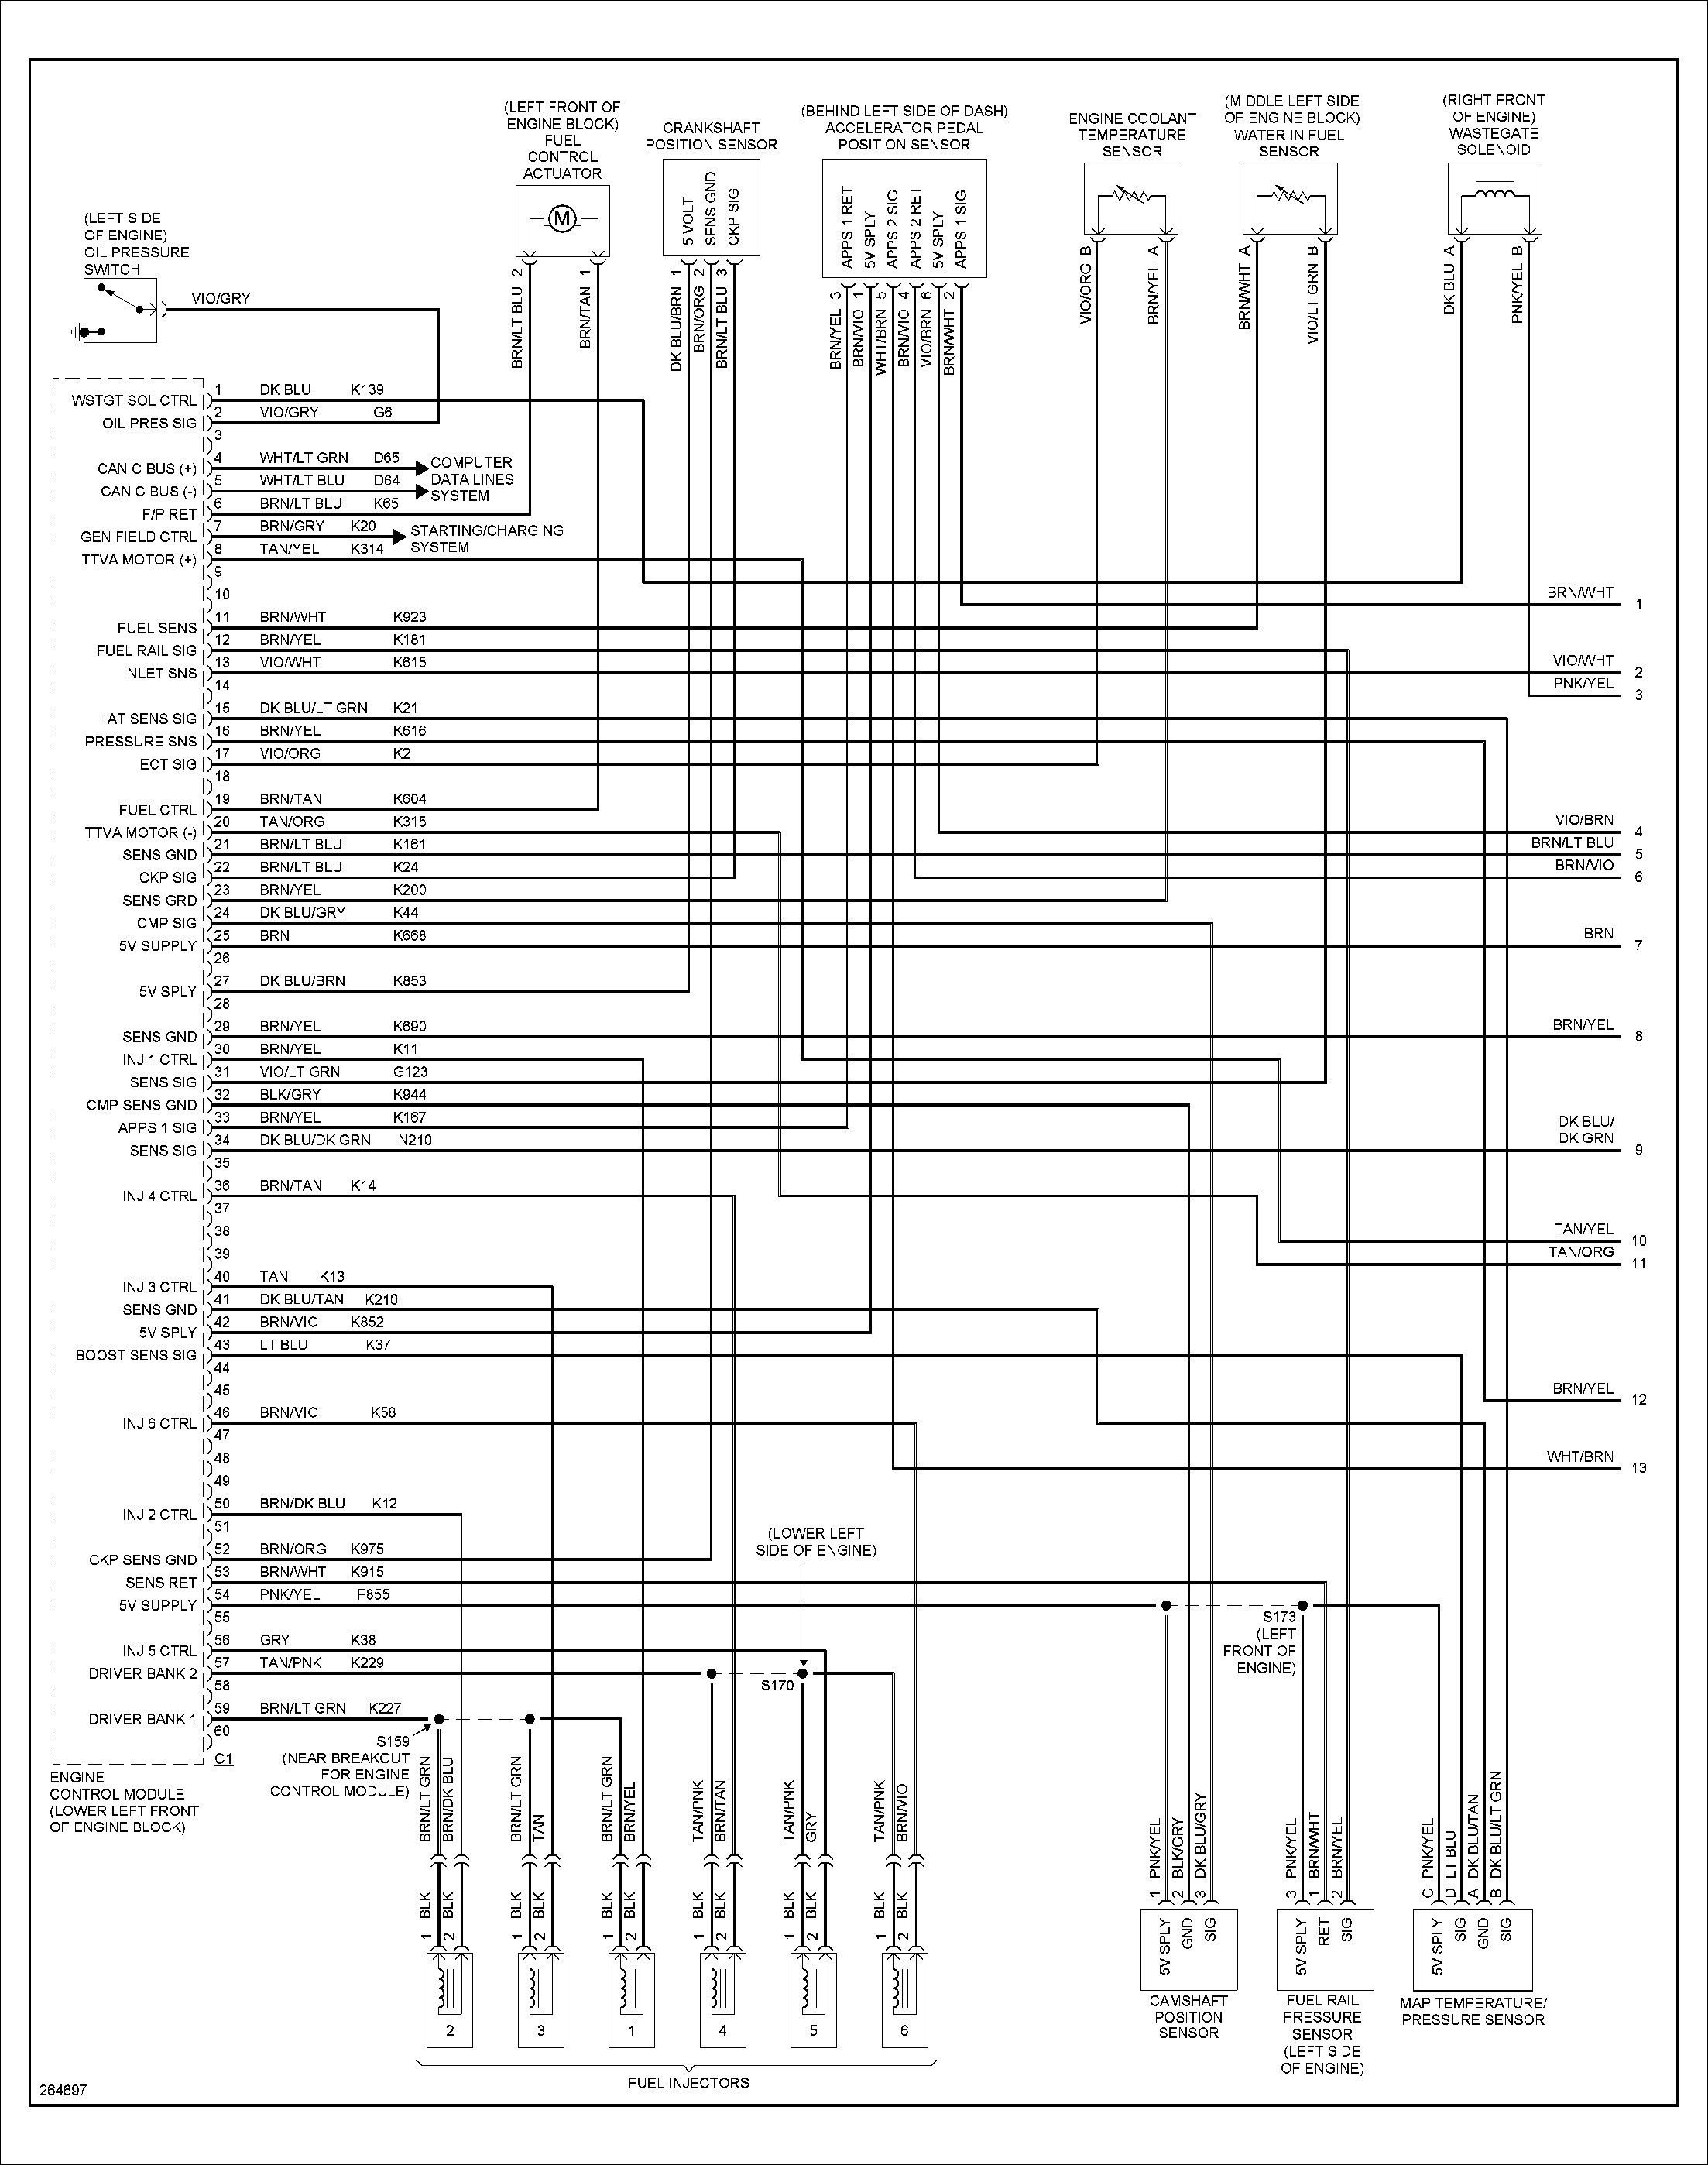 Unique 2007 Dodge Ram 1500 Headlight Wiring Diagram Diagram Diagramsample Diagramtemplate Wiringdiagram Diagramchart 2004 Dodge Ram 1500 Dodge Dodge Ram